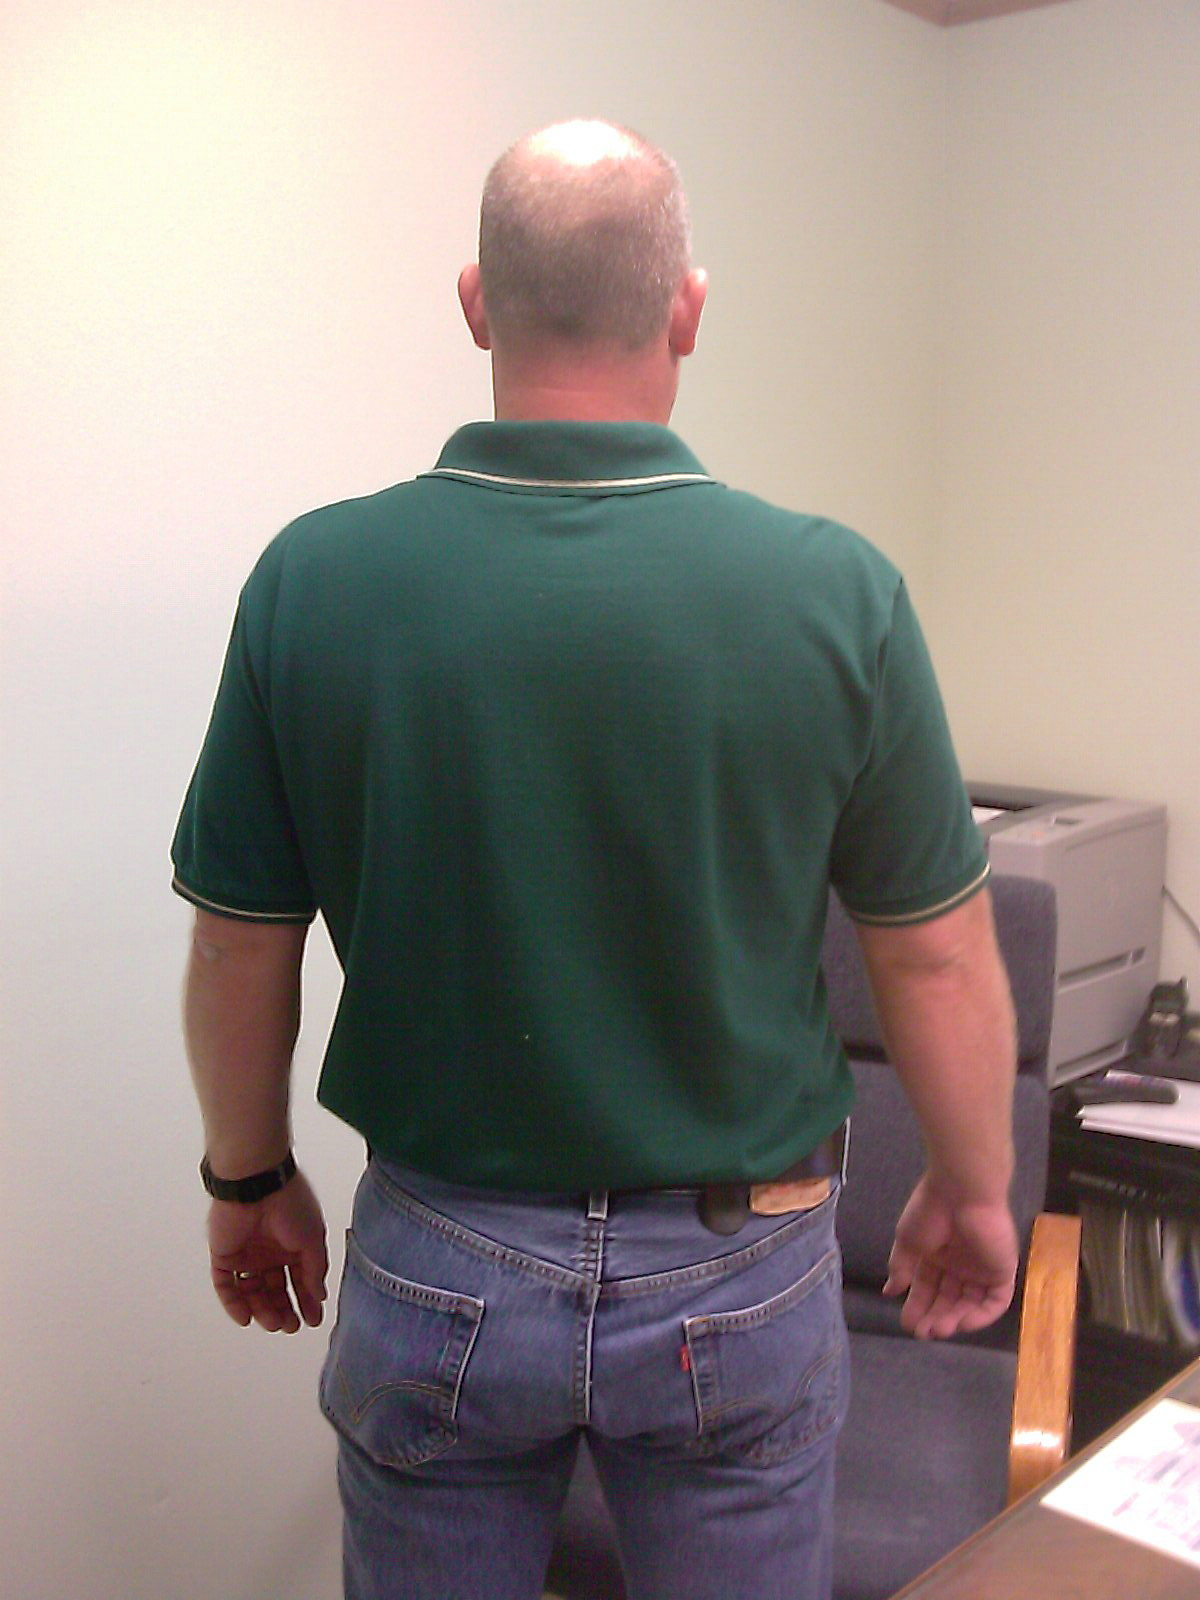 Let's See Your Pic's - How You Carry Concealed.-2.jpg